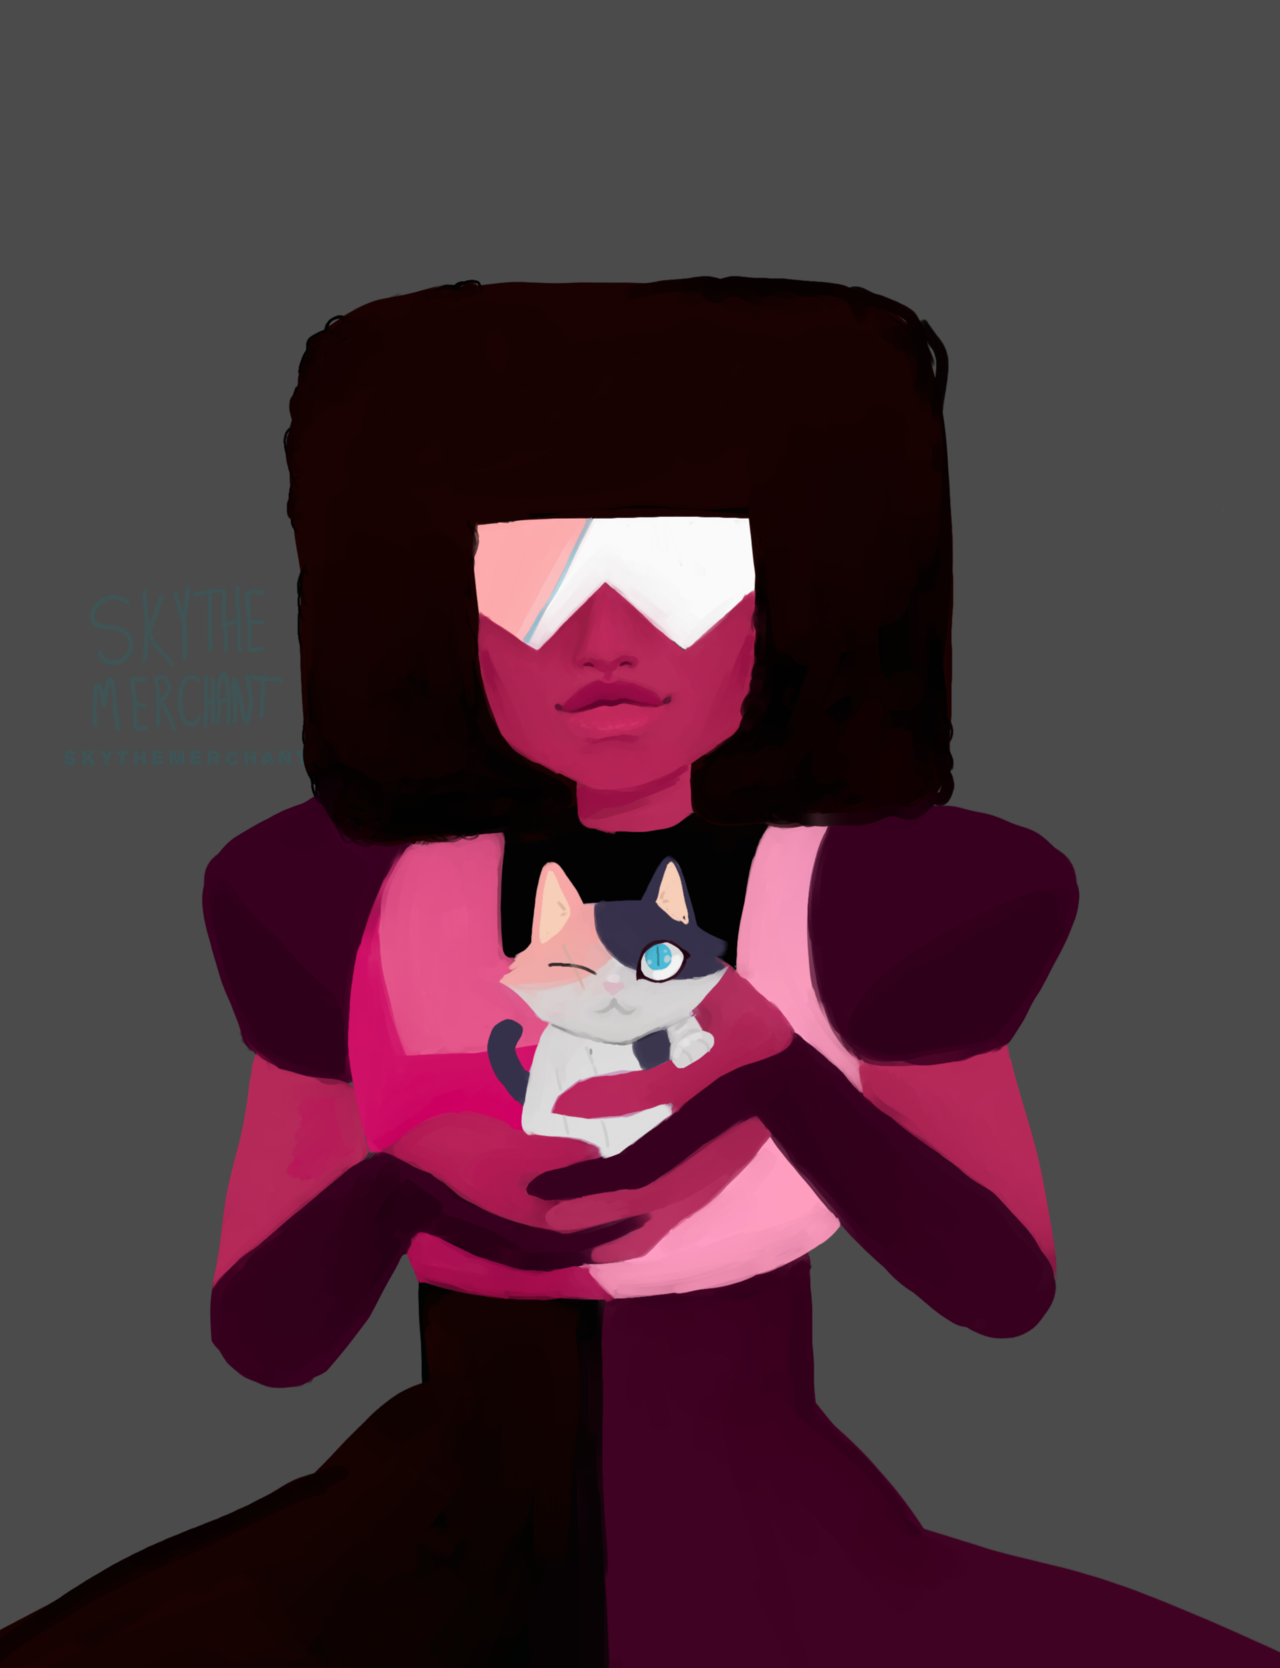 Garnet and (cat) steven for you all, since its been 80 years